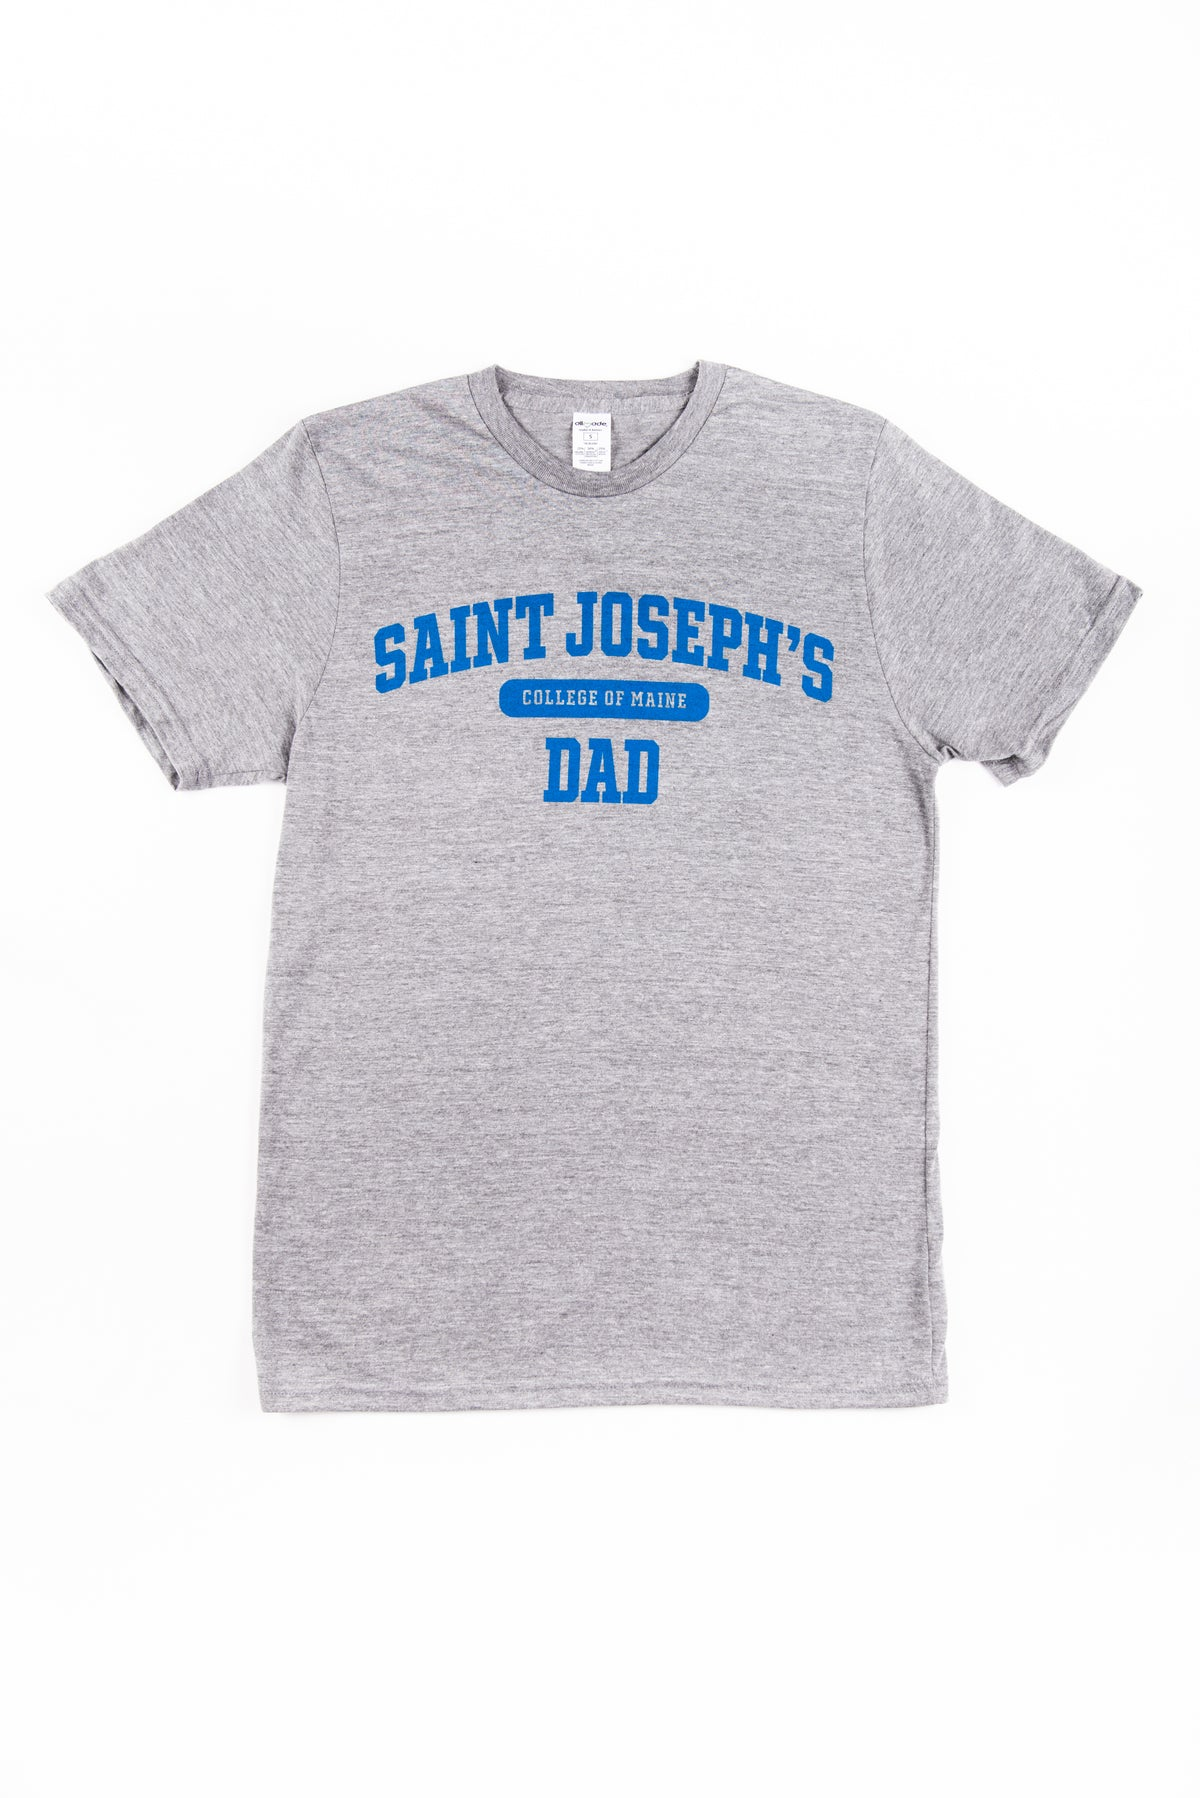 Grey SJC Dad Shirt